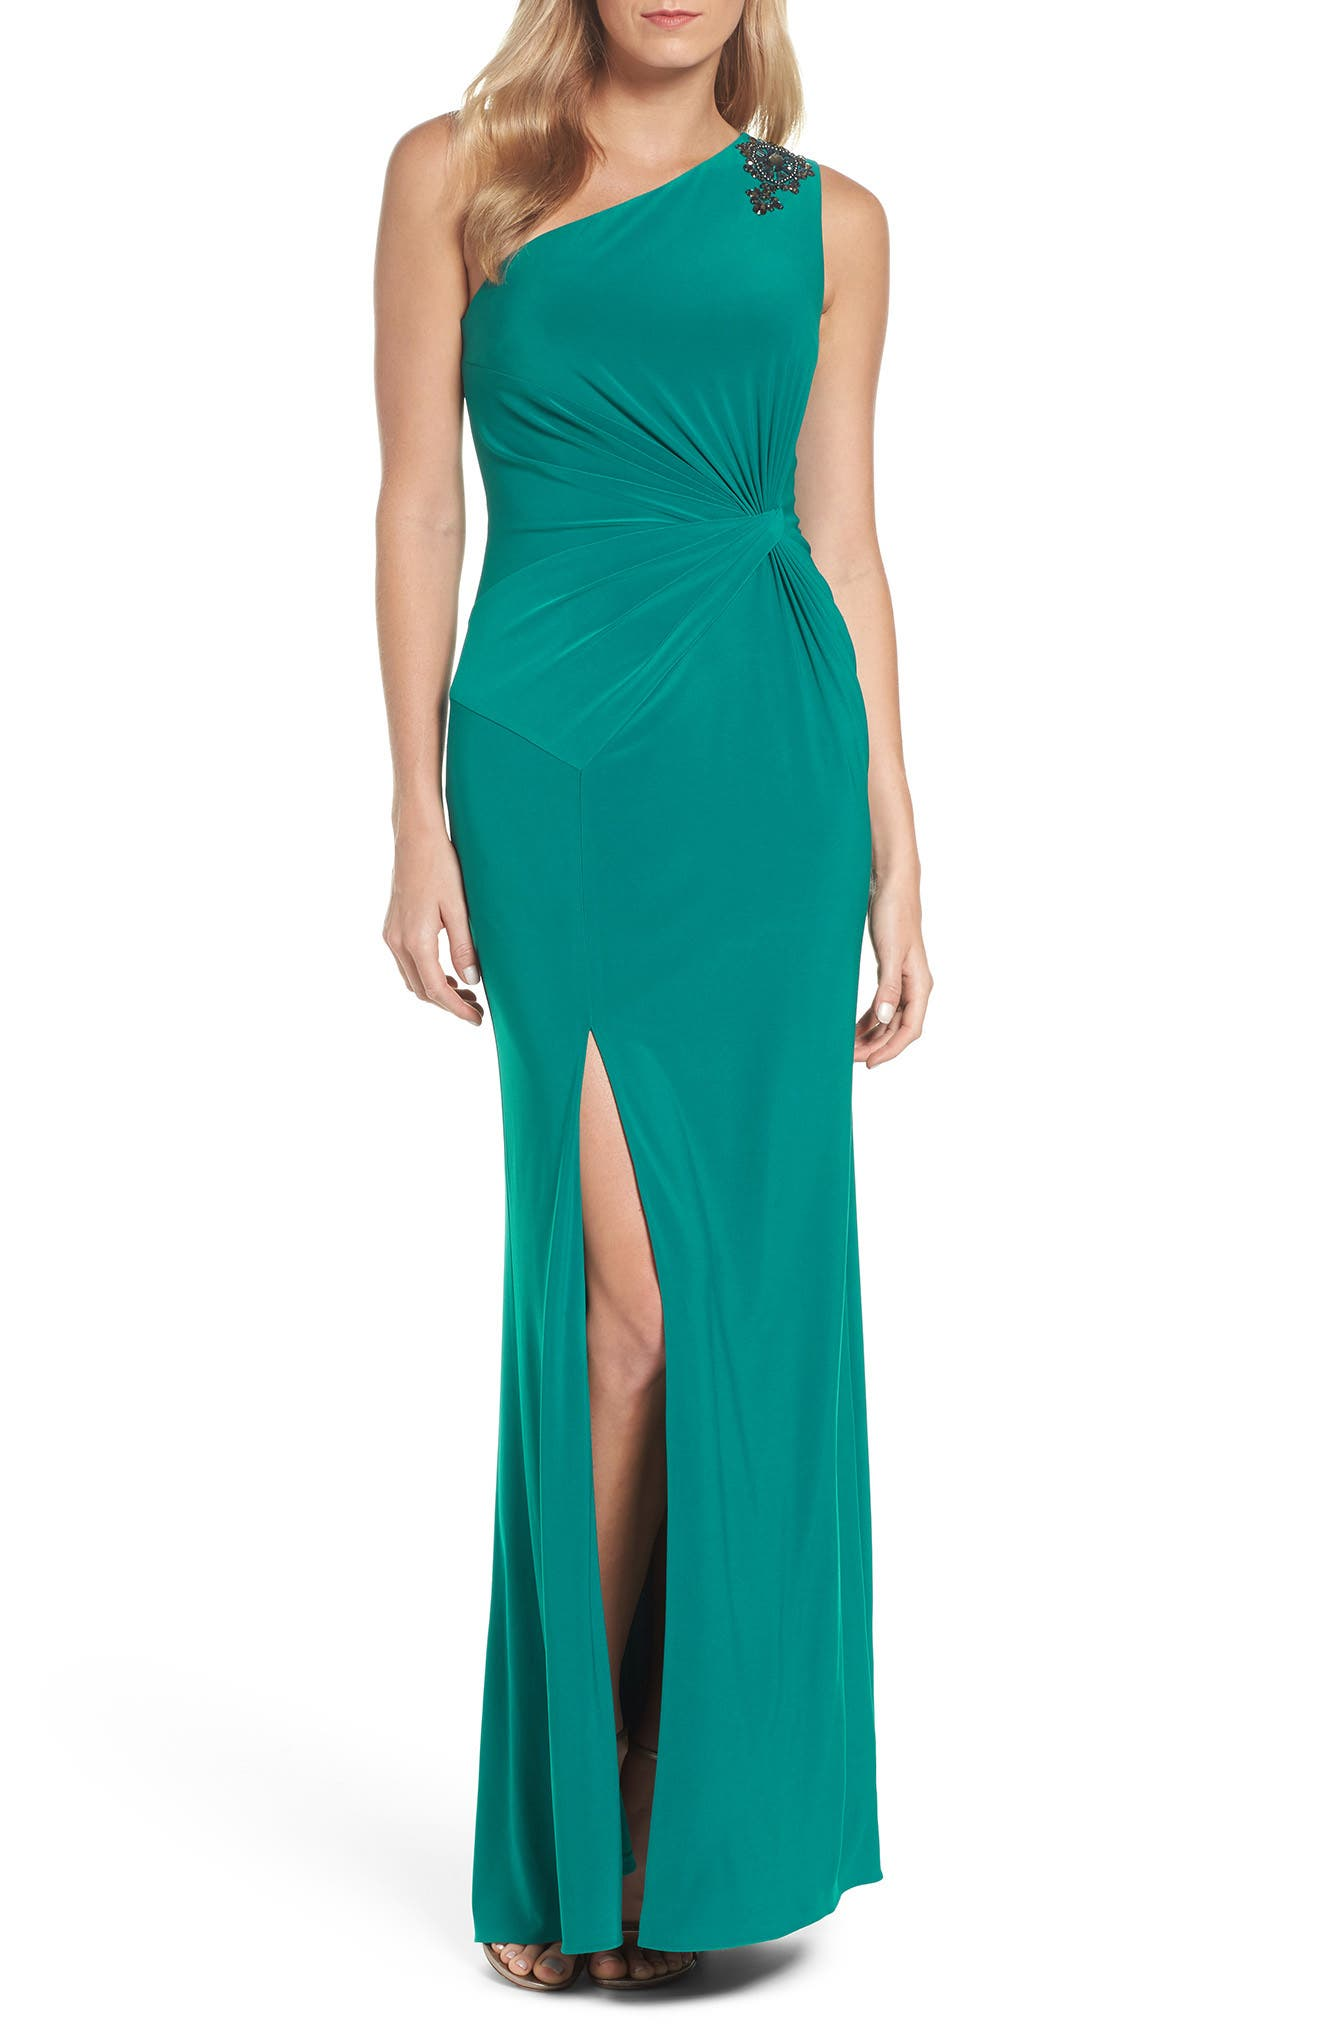 Alternate Image 1 Selected - Adrianna Papell One-Shoulder Jersey Gown